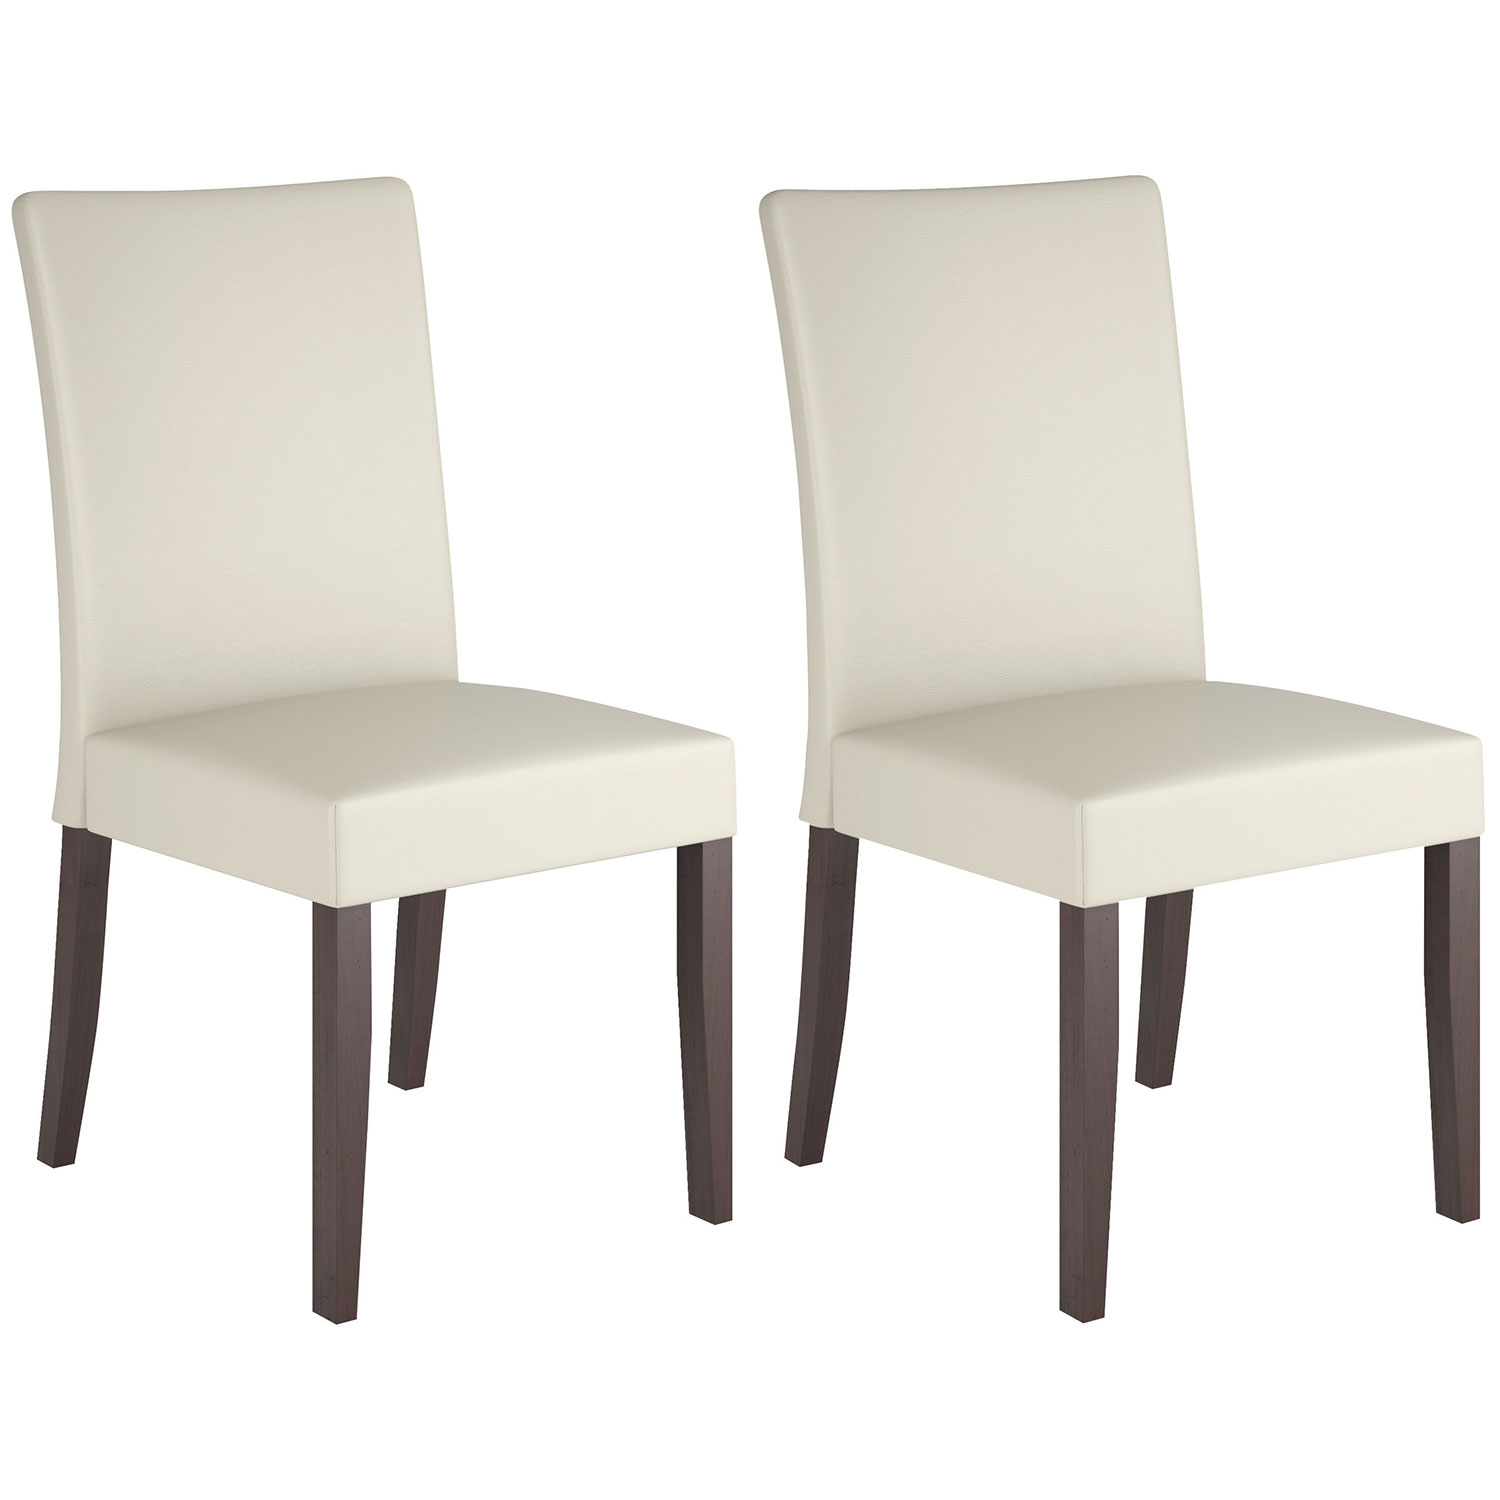 Atwood Transitional Dining Chair Set of 2 Rich Cappuccino